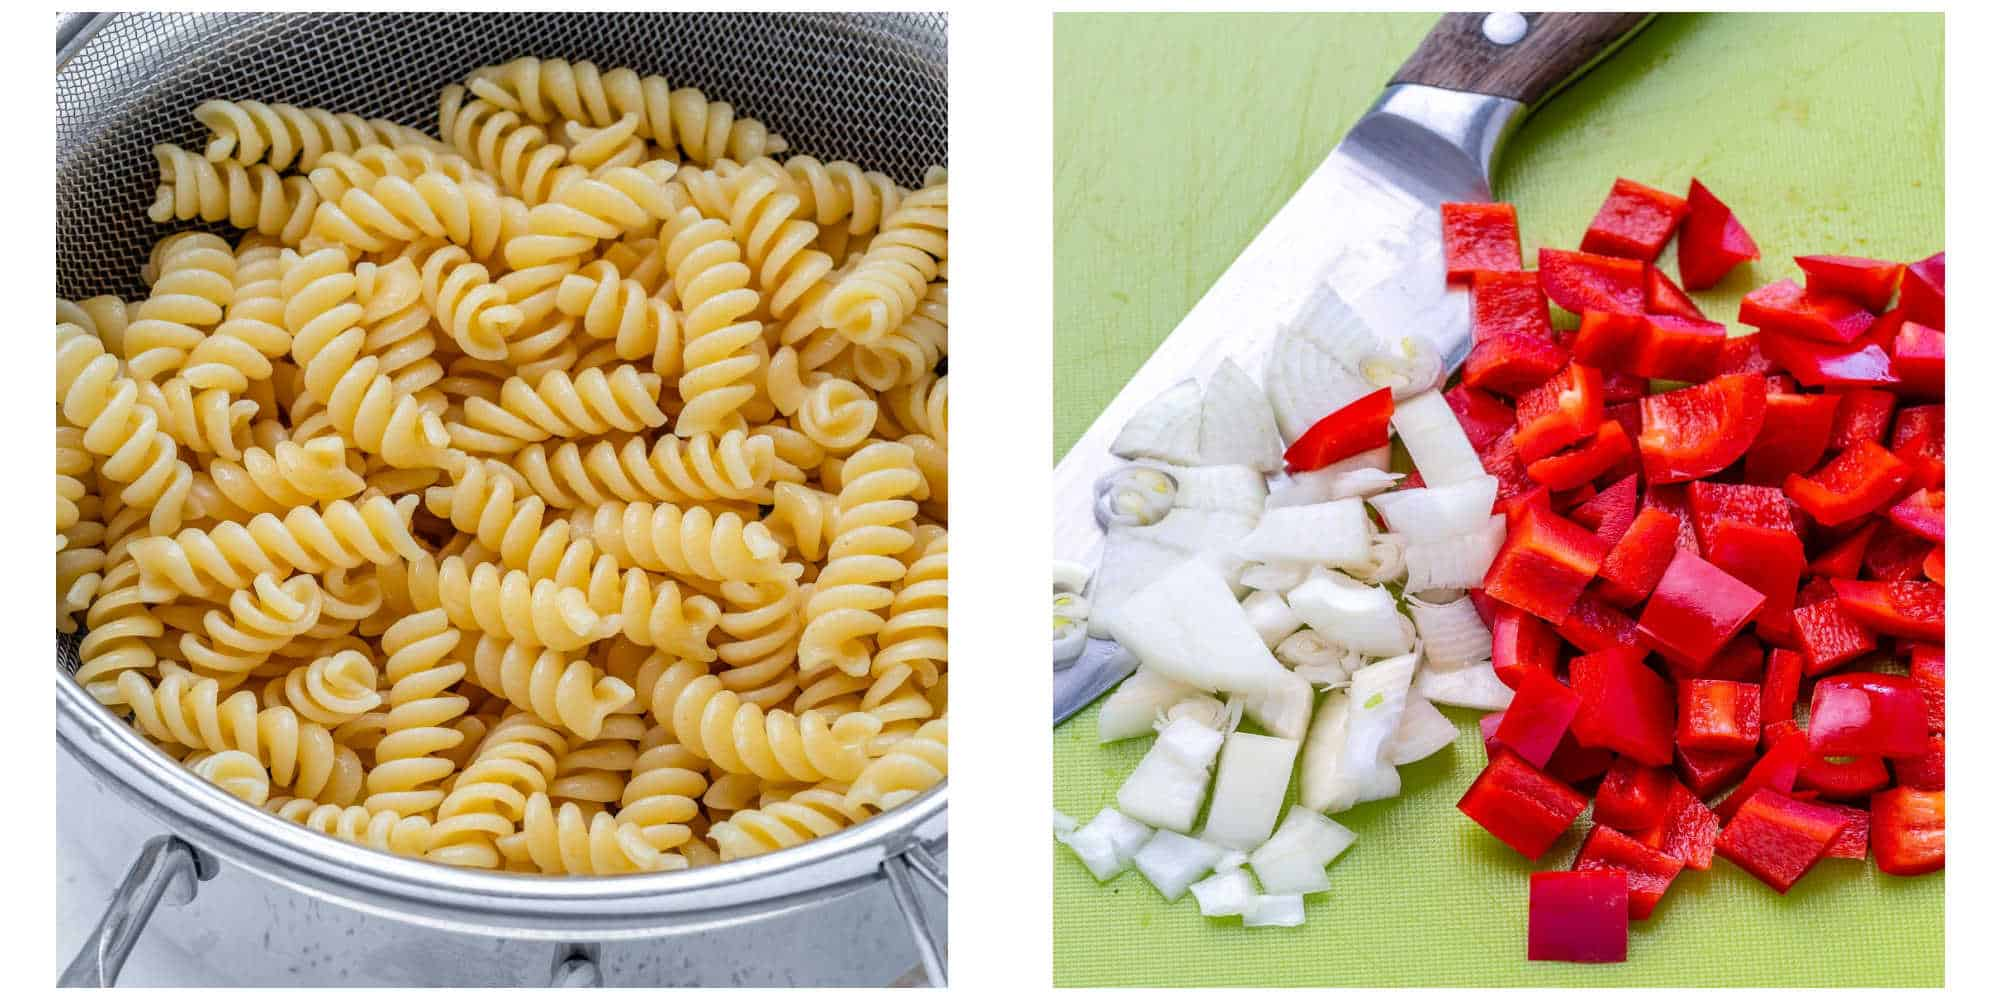 collage of boiled pasta on the left and chopped peppers and onions on the right